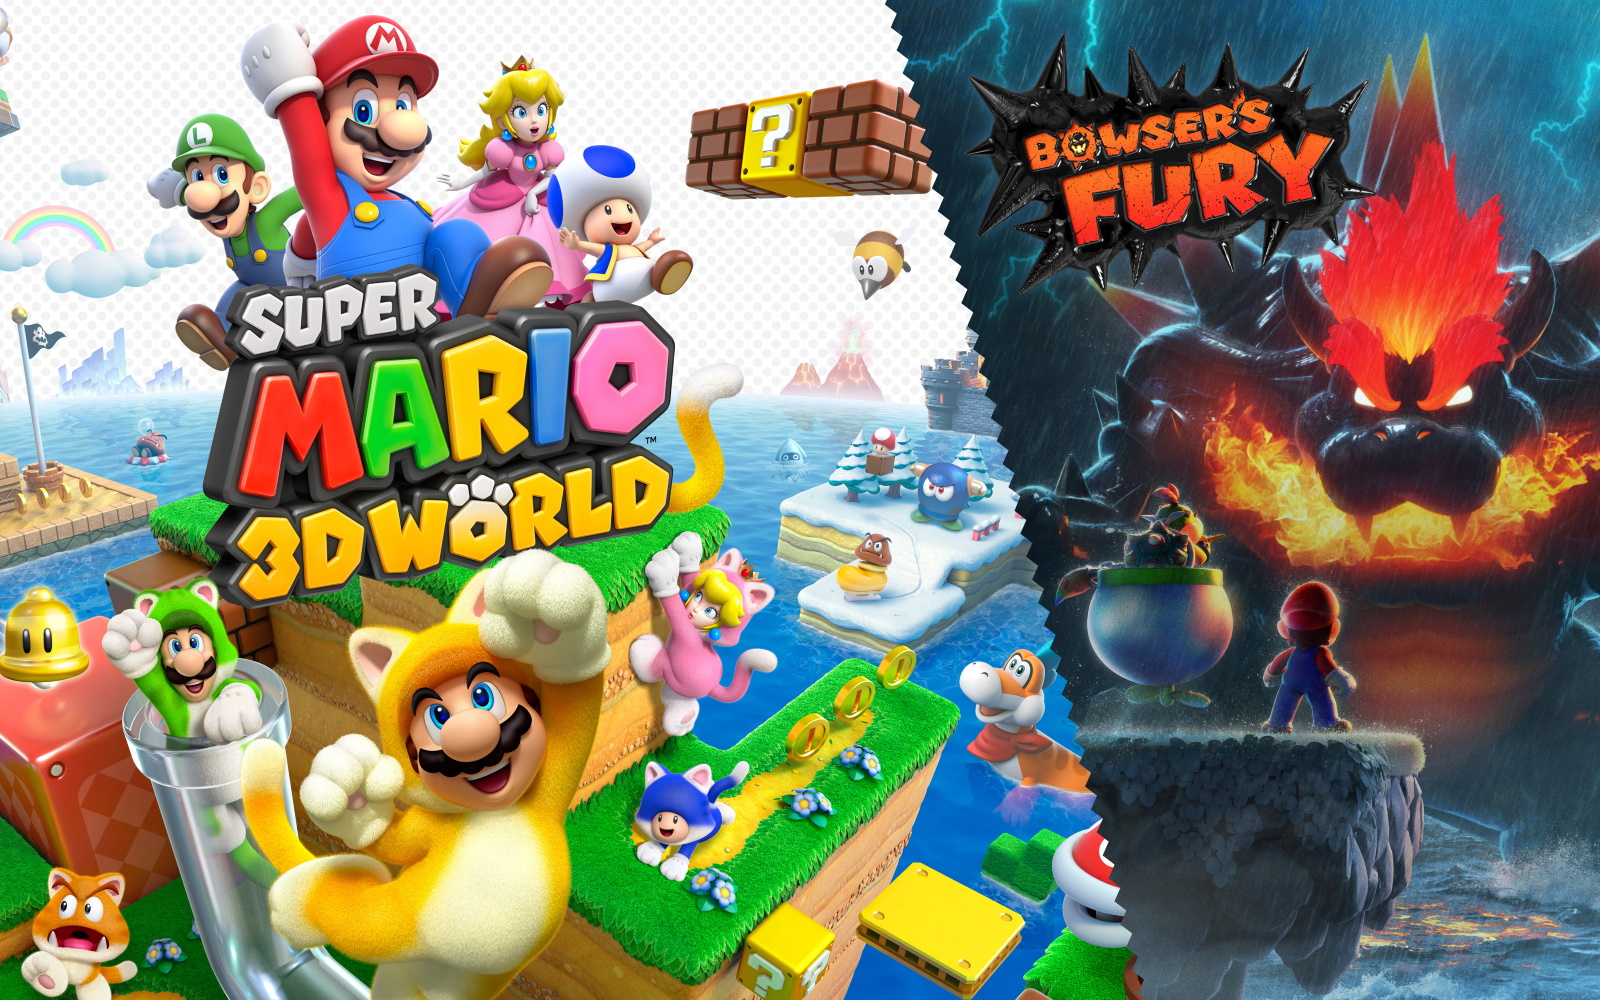 Bowser Set To Bring Fury This February. Plus Mario Themed Switch Announced